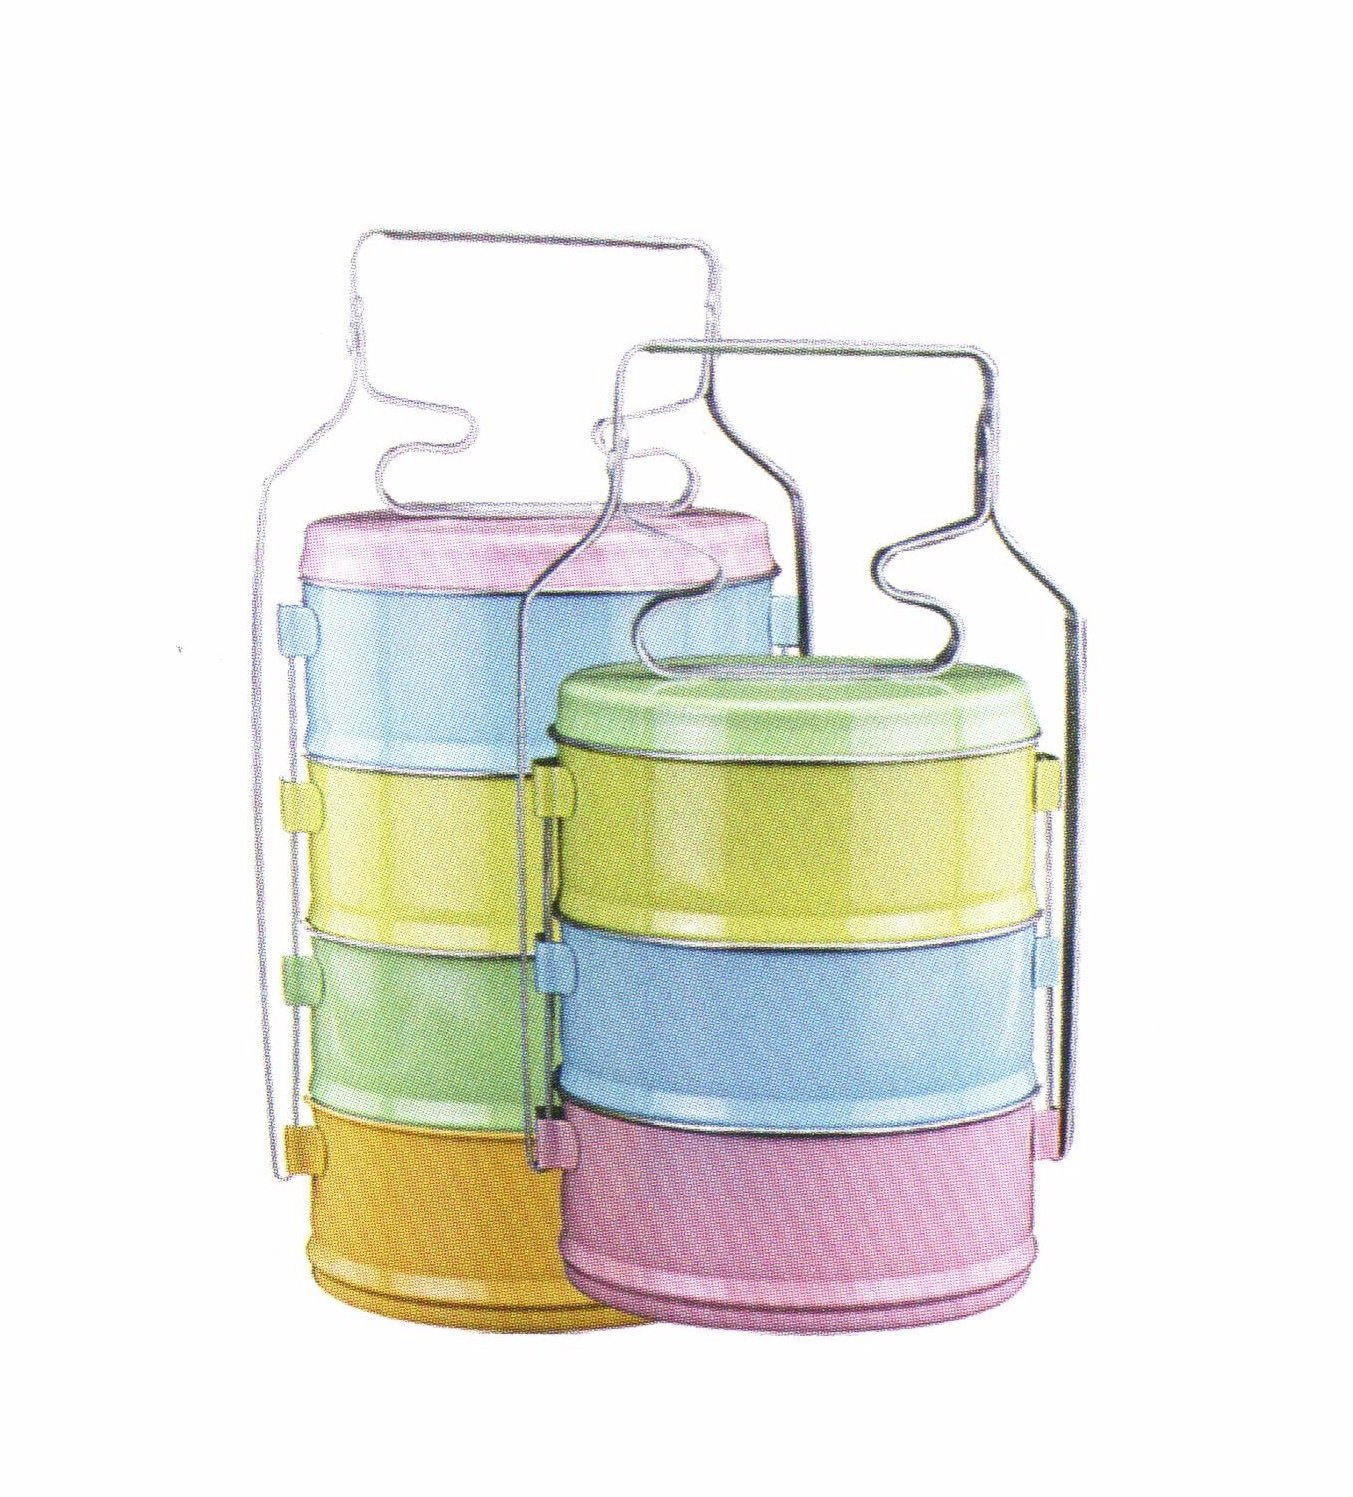 3-4 Layers Stainless Steel Lunch Box Food Carrier Lb004